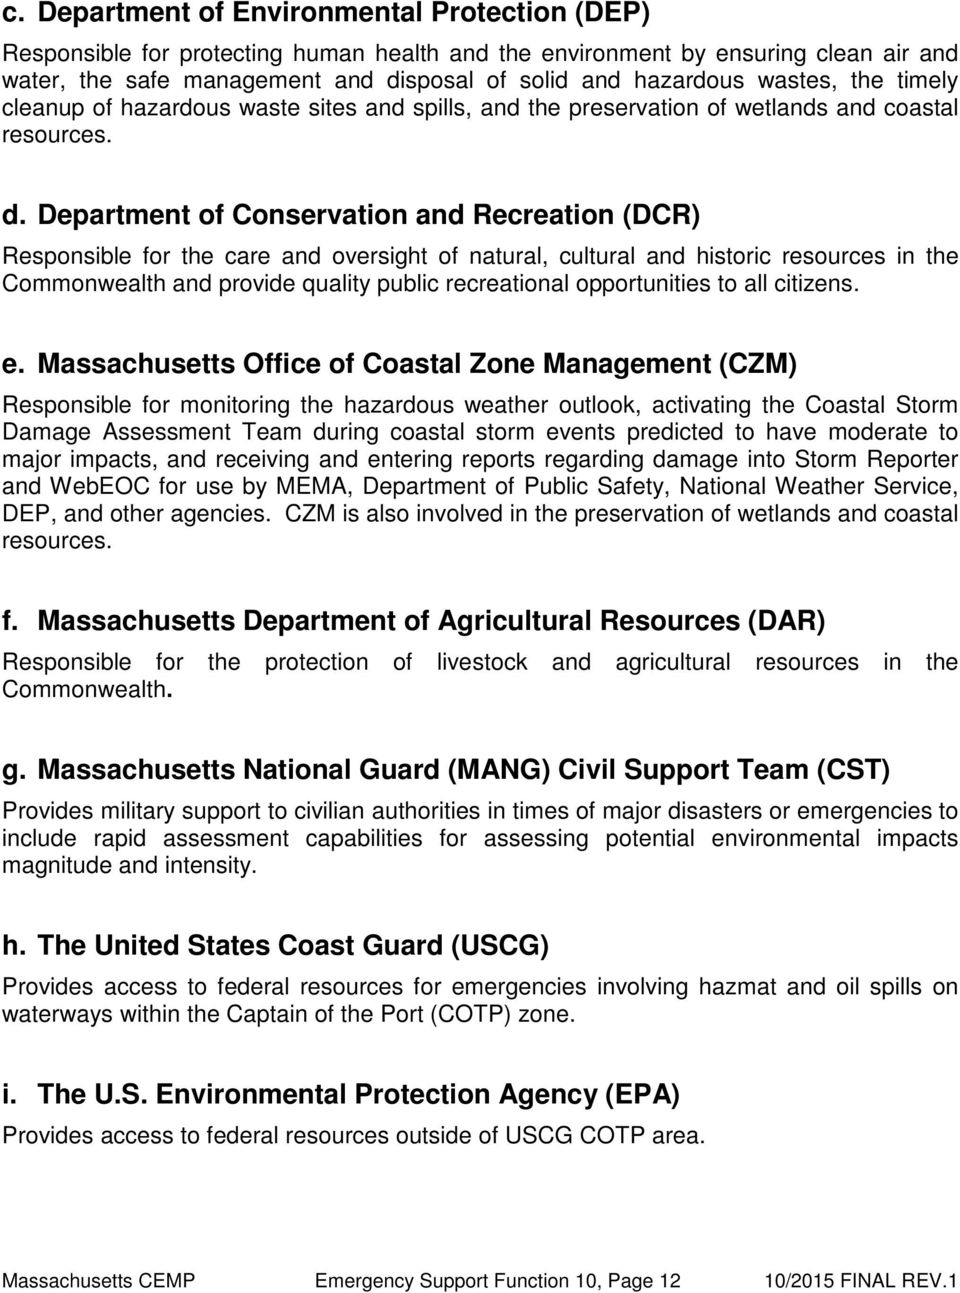 Department of Conservation and Recreation (DCR) Responsible for the care and oversight of natural, cultural and historic resources in the Commonwealth and provide quality public recreational